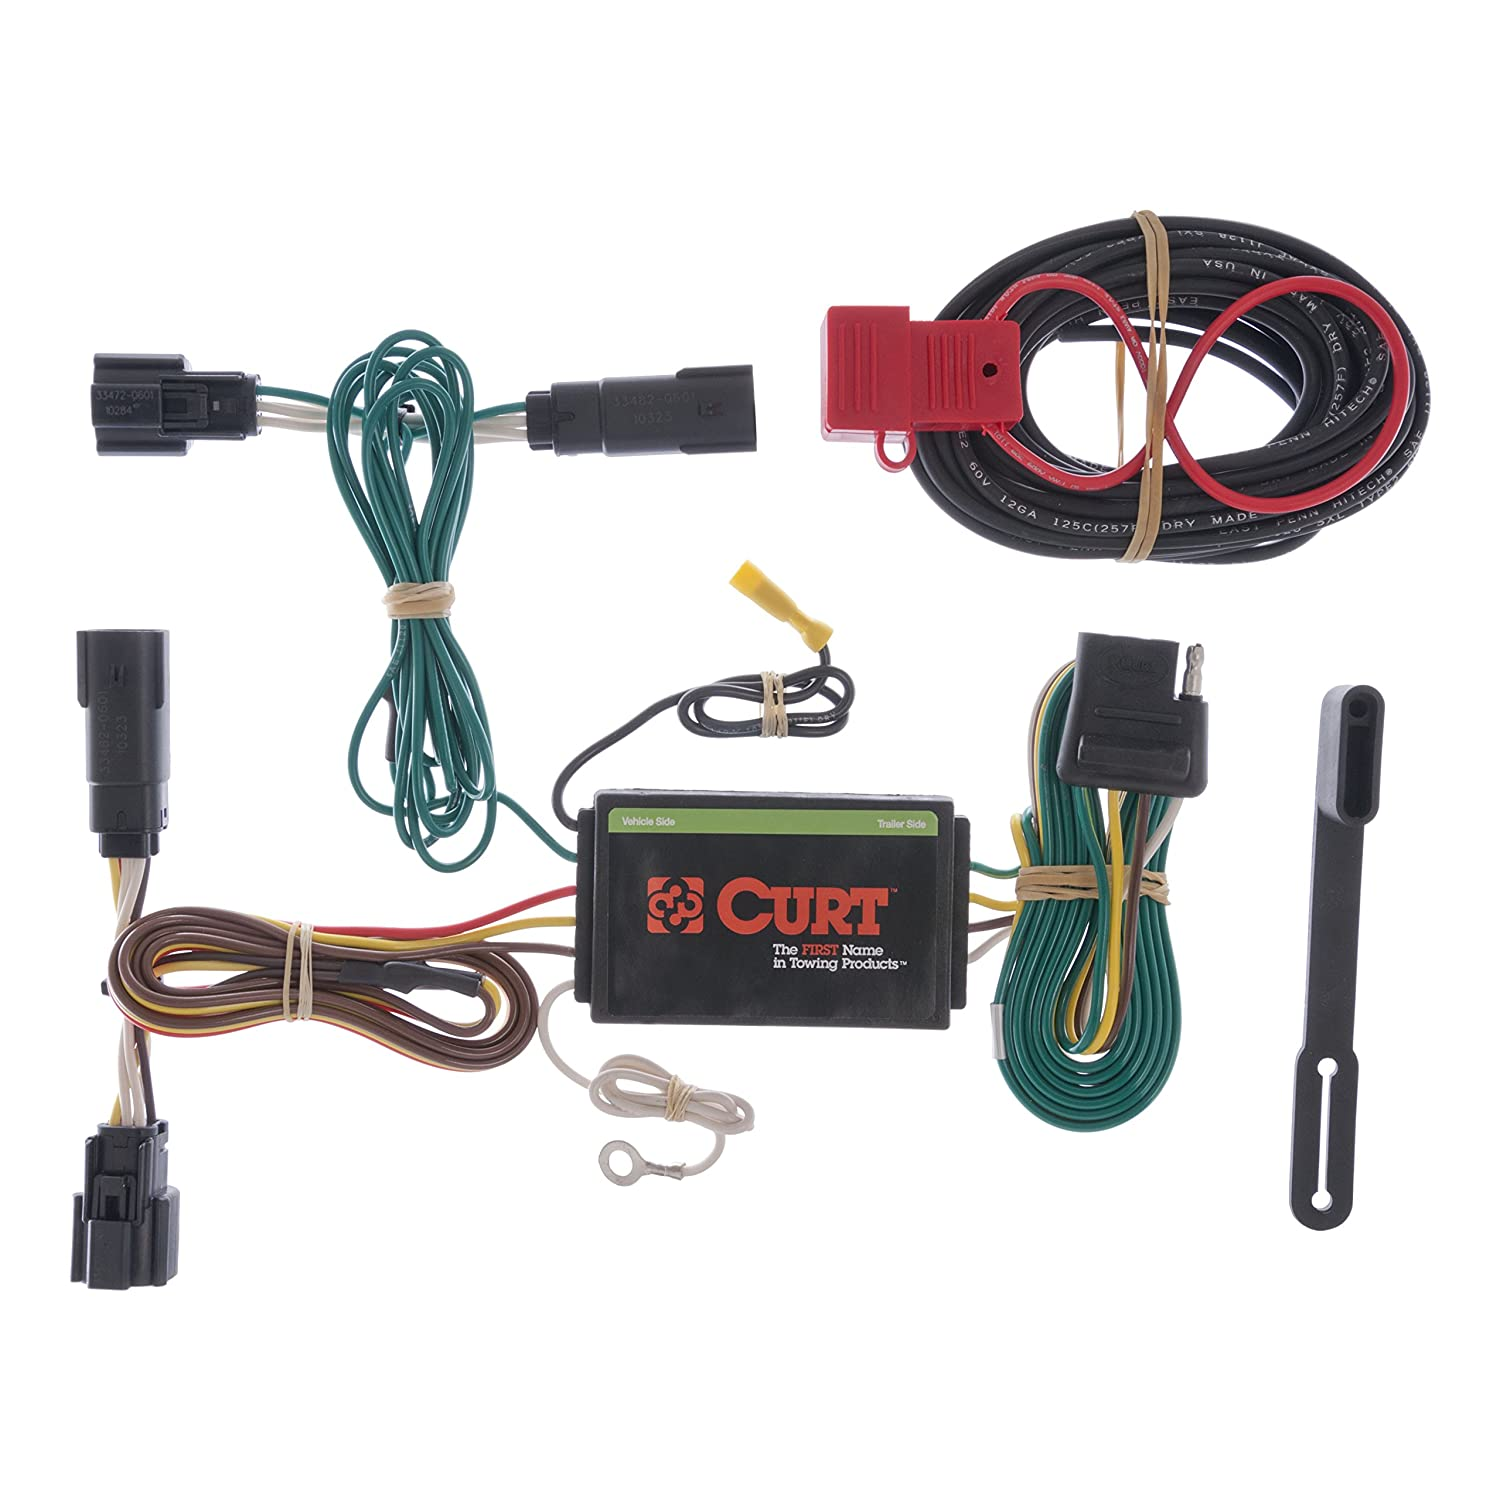 81ohhw2GXXL._SL1500_ amazon com curt 56120 custom wiring harness automotive 2014 ford edge trailer wiring harness at aneh.co